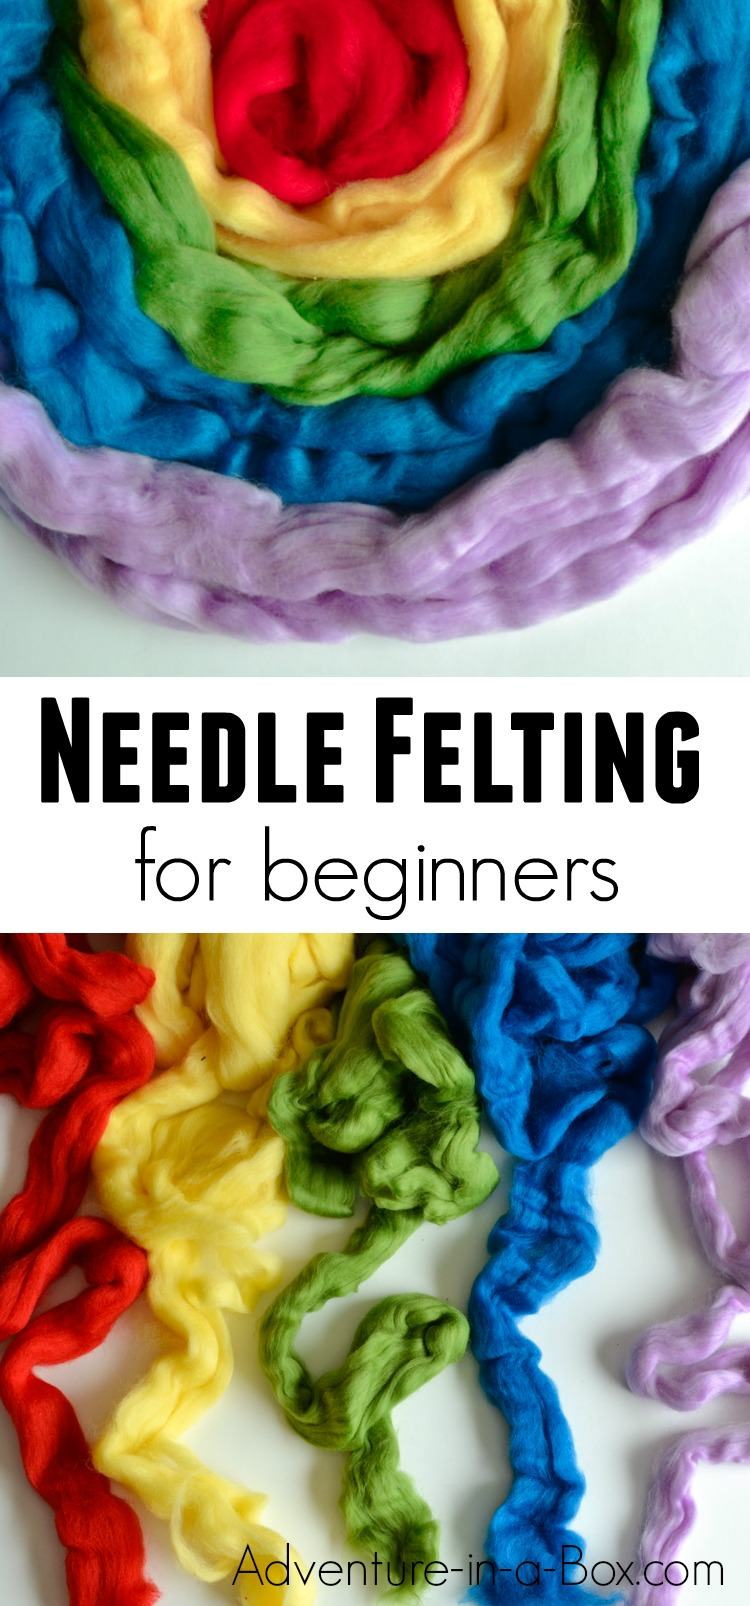 If you like acquiring new crafts or always wanted to try needle felting in particular, this is a tutorial to get you started. Included are my recommendations for basic needle felting tools and a few simple needle felting techniques to try! #needlefelting #artsandcrafts #handmade #arttutorial